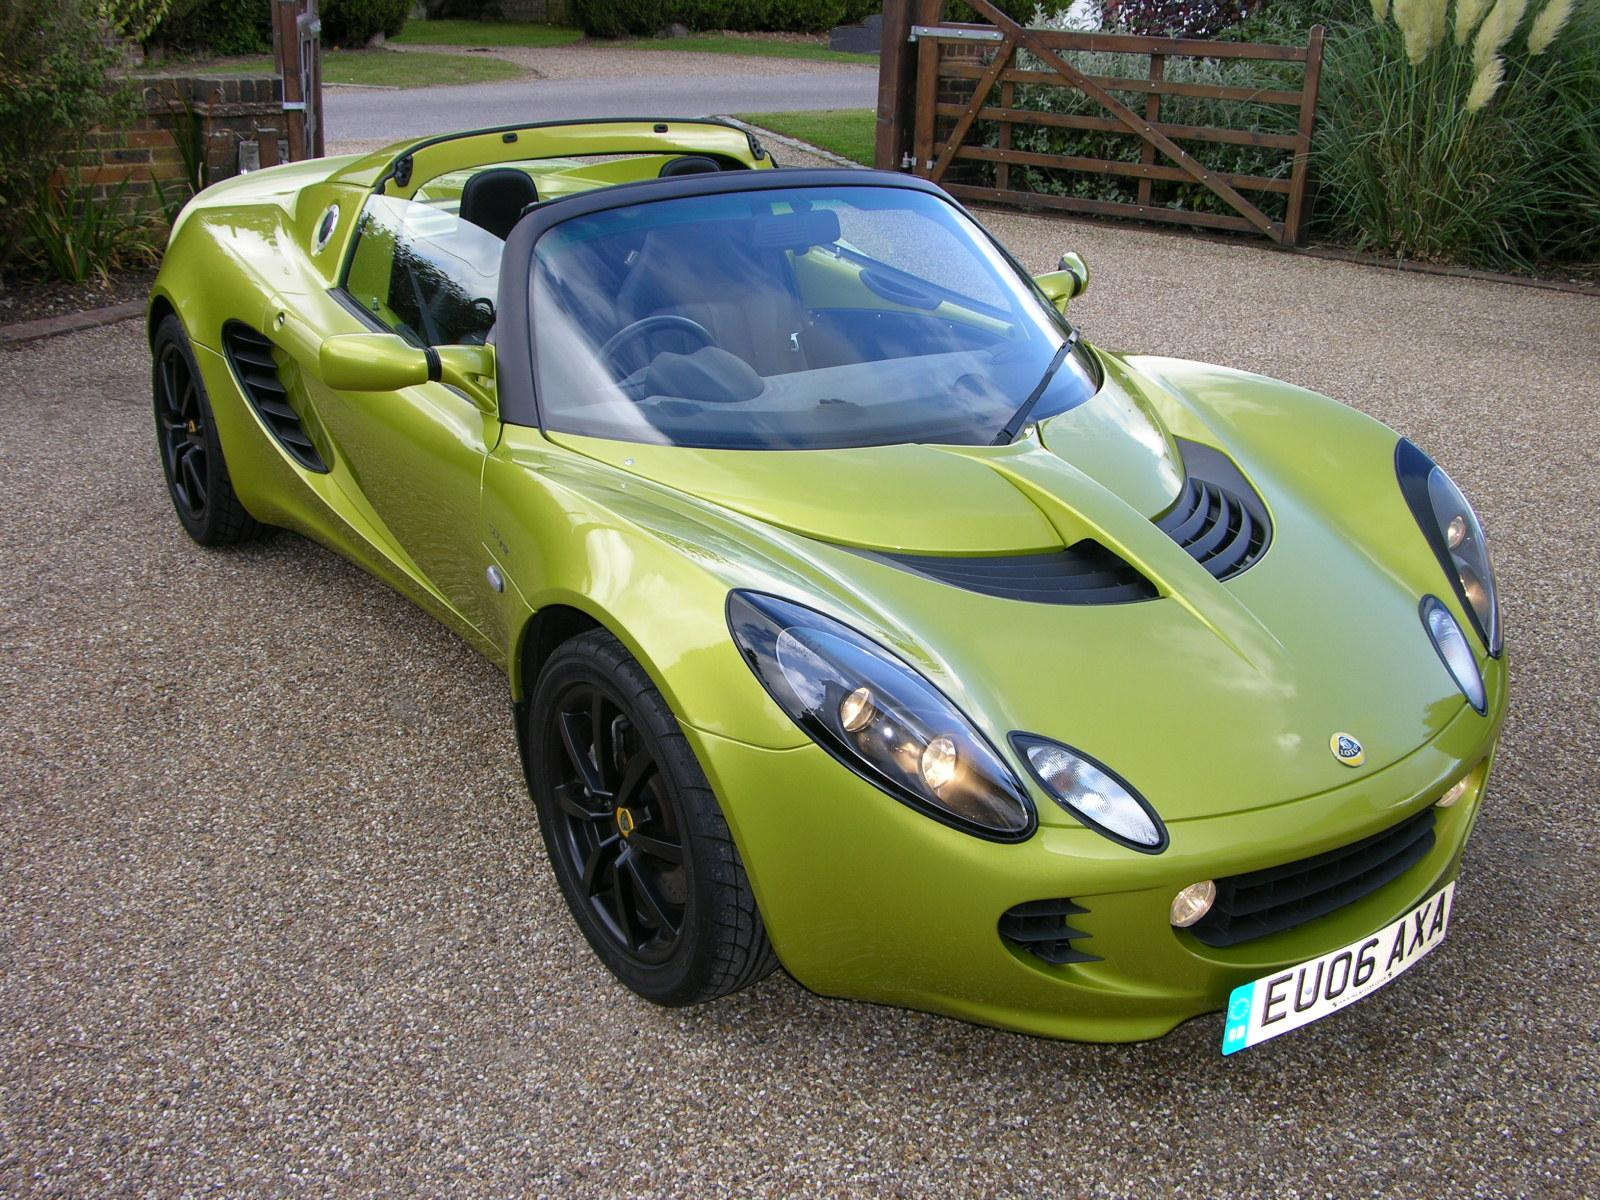 file lotus elise 111r flickr the car spy 19 jpg wikimedia commons. Black Bedroom Furniture Sets. Home Design Ideas